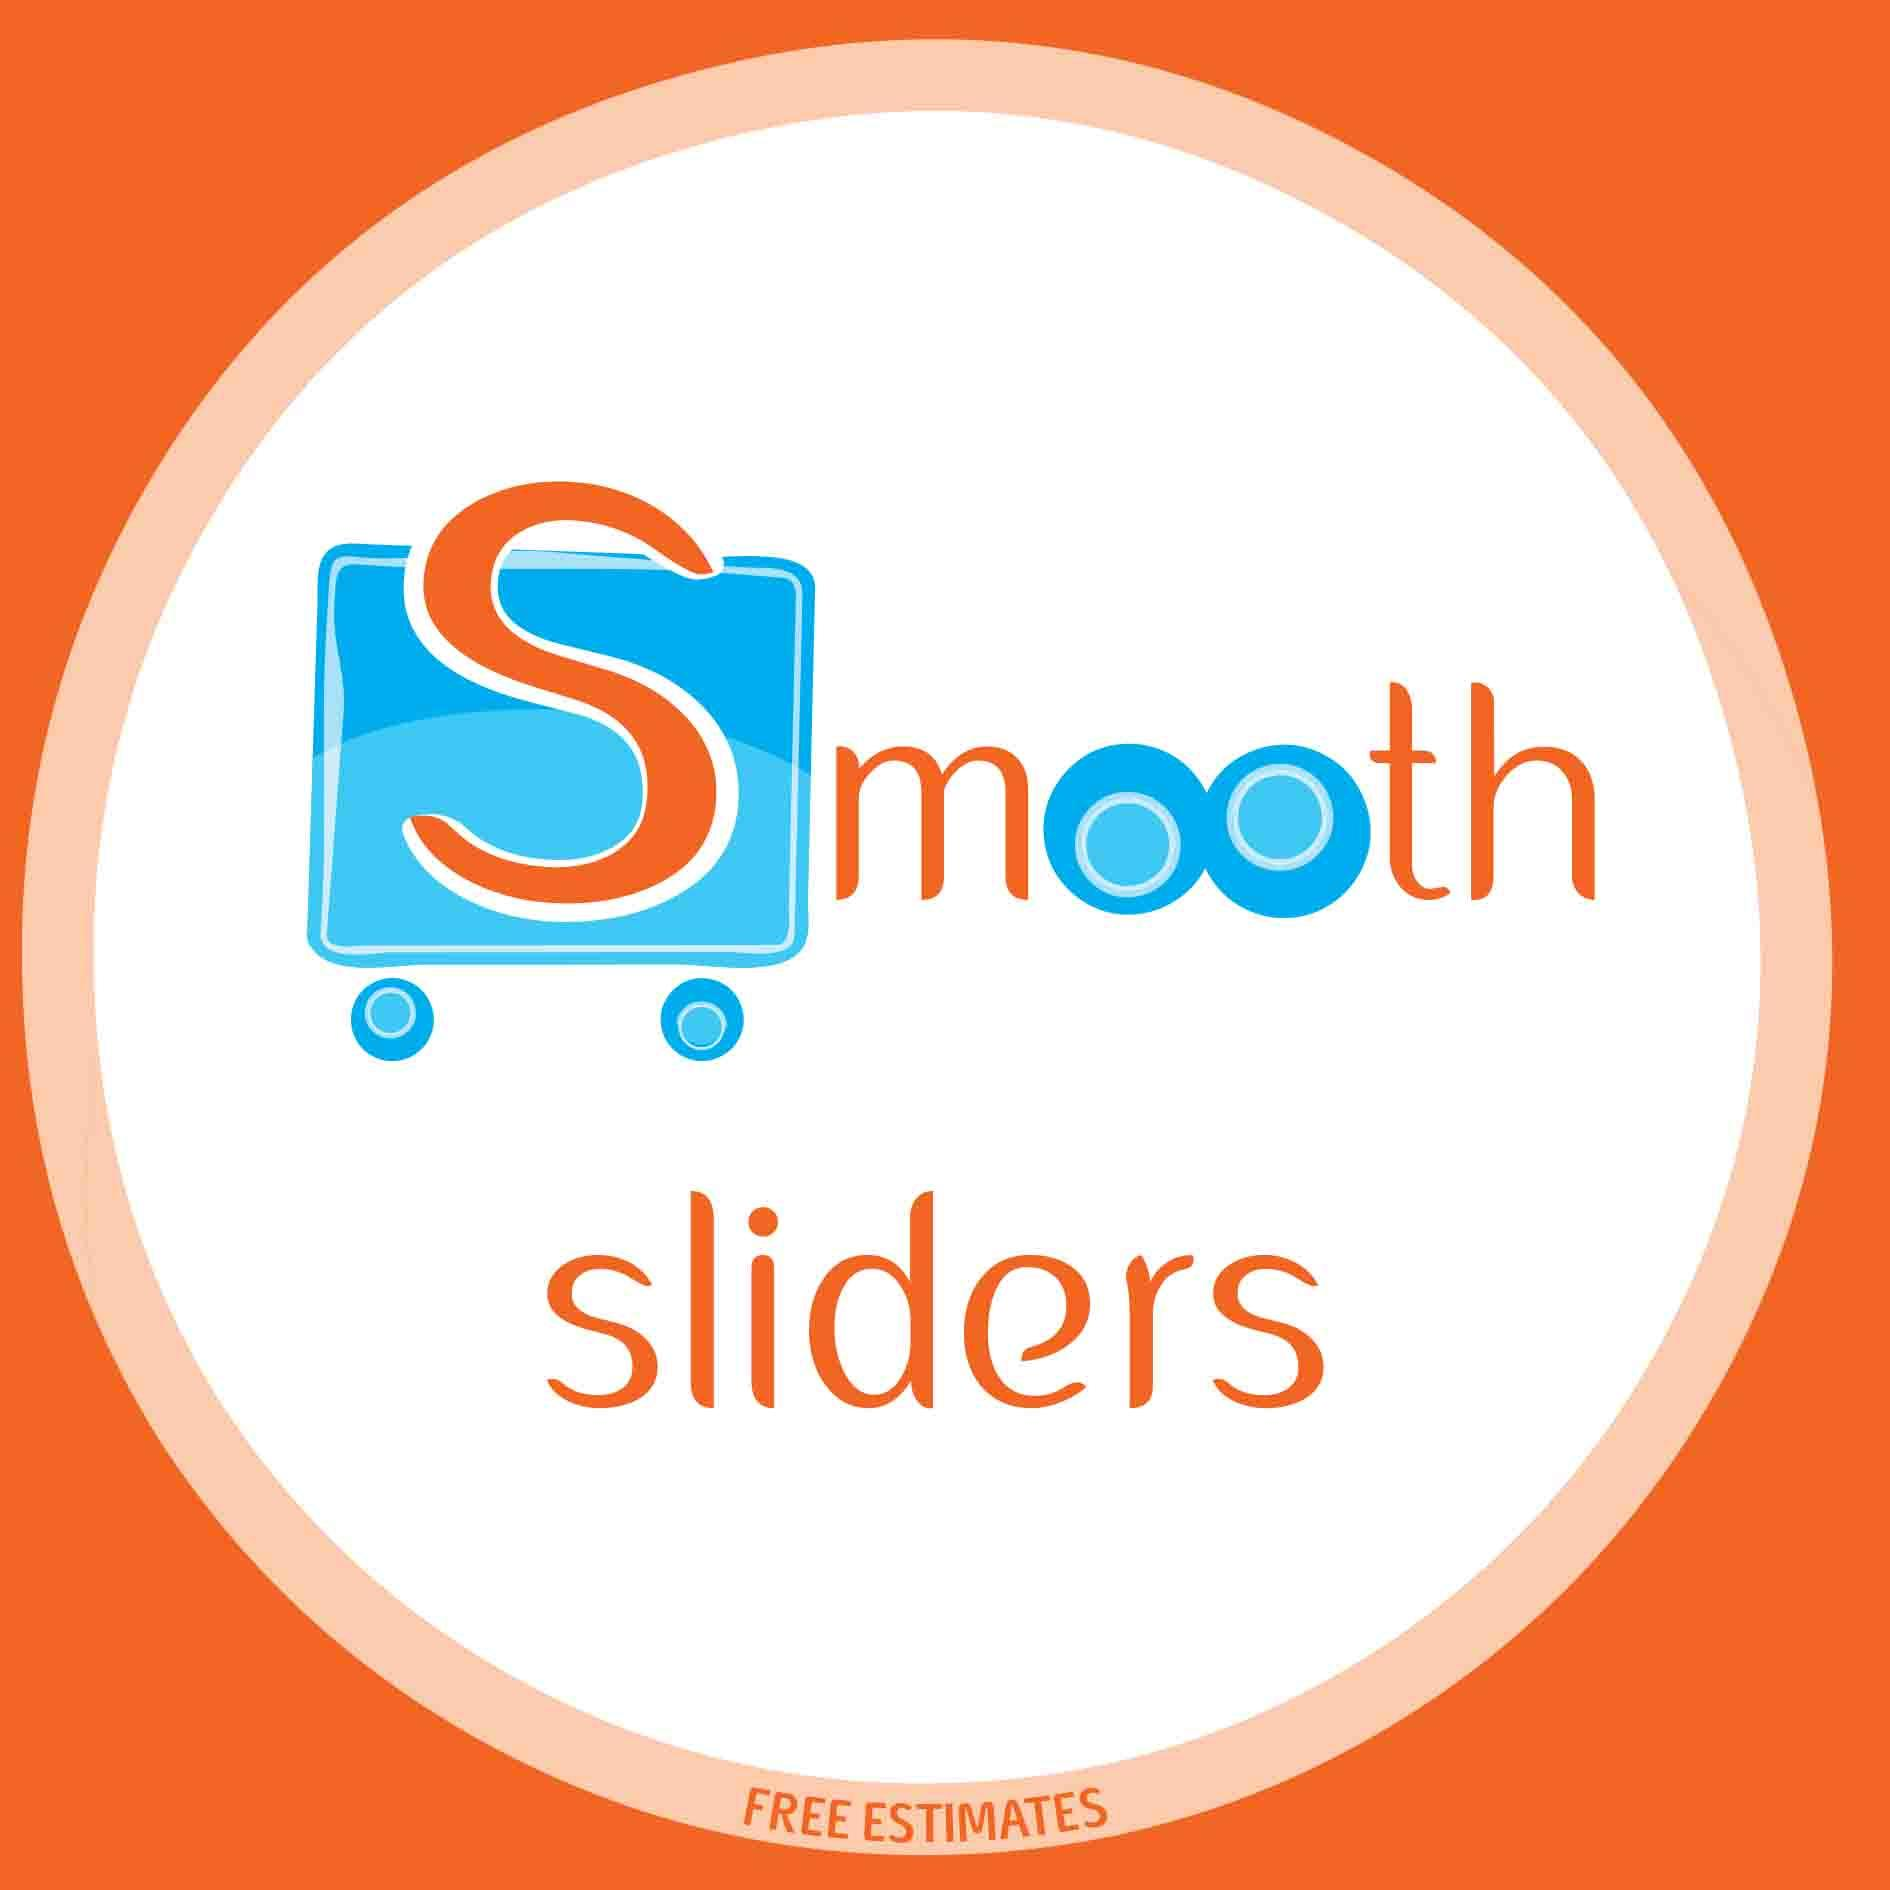 Smooth Sliders Coupons Near Me In Fort Lauderdale 8coupons